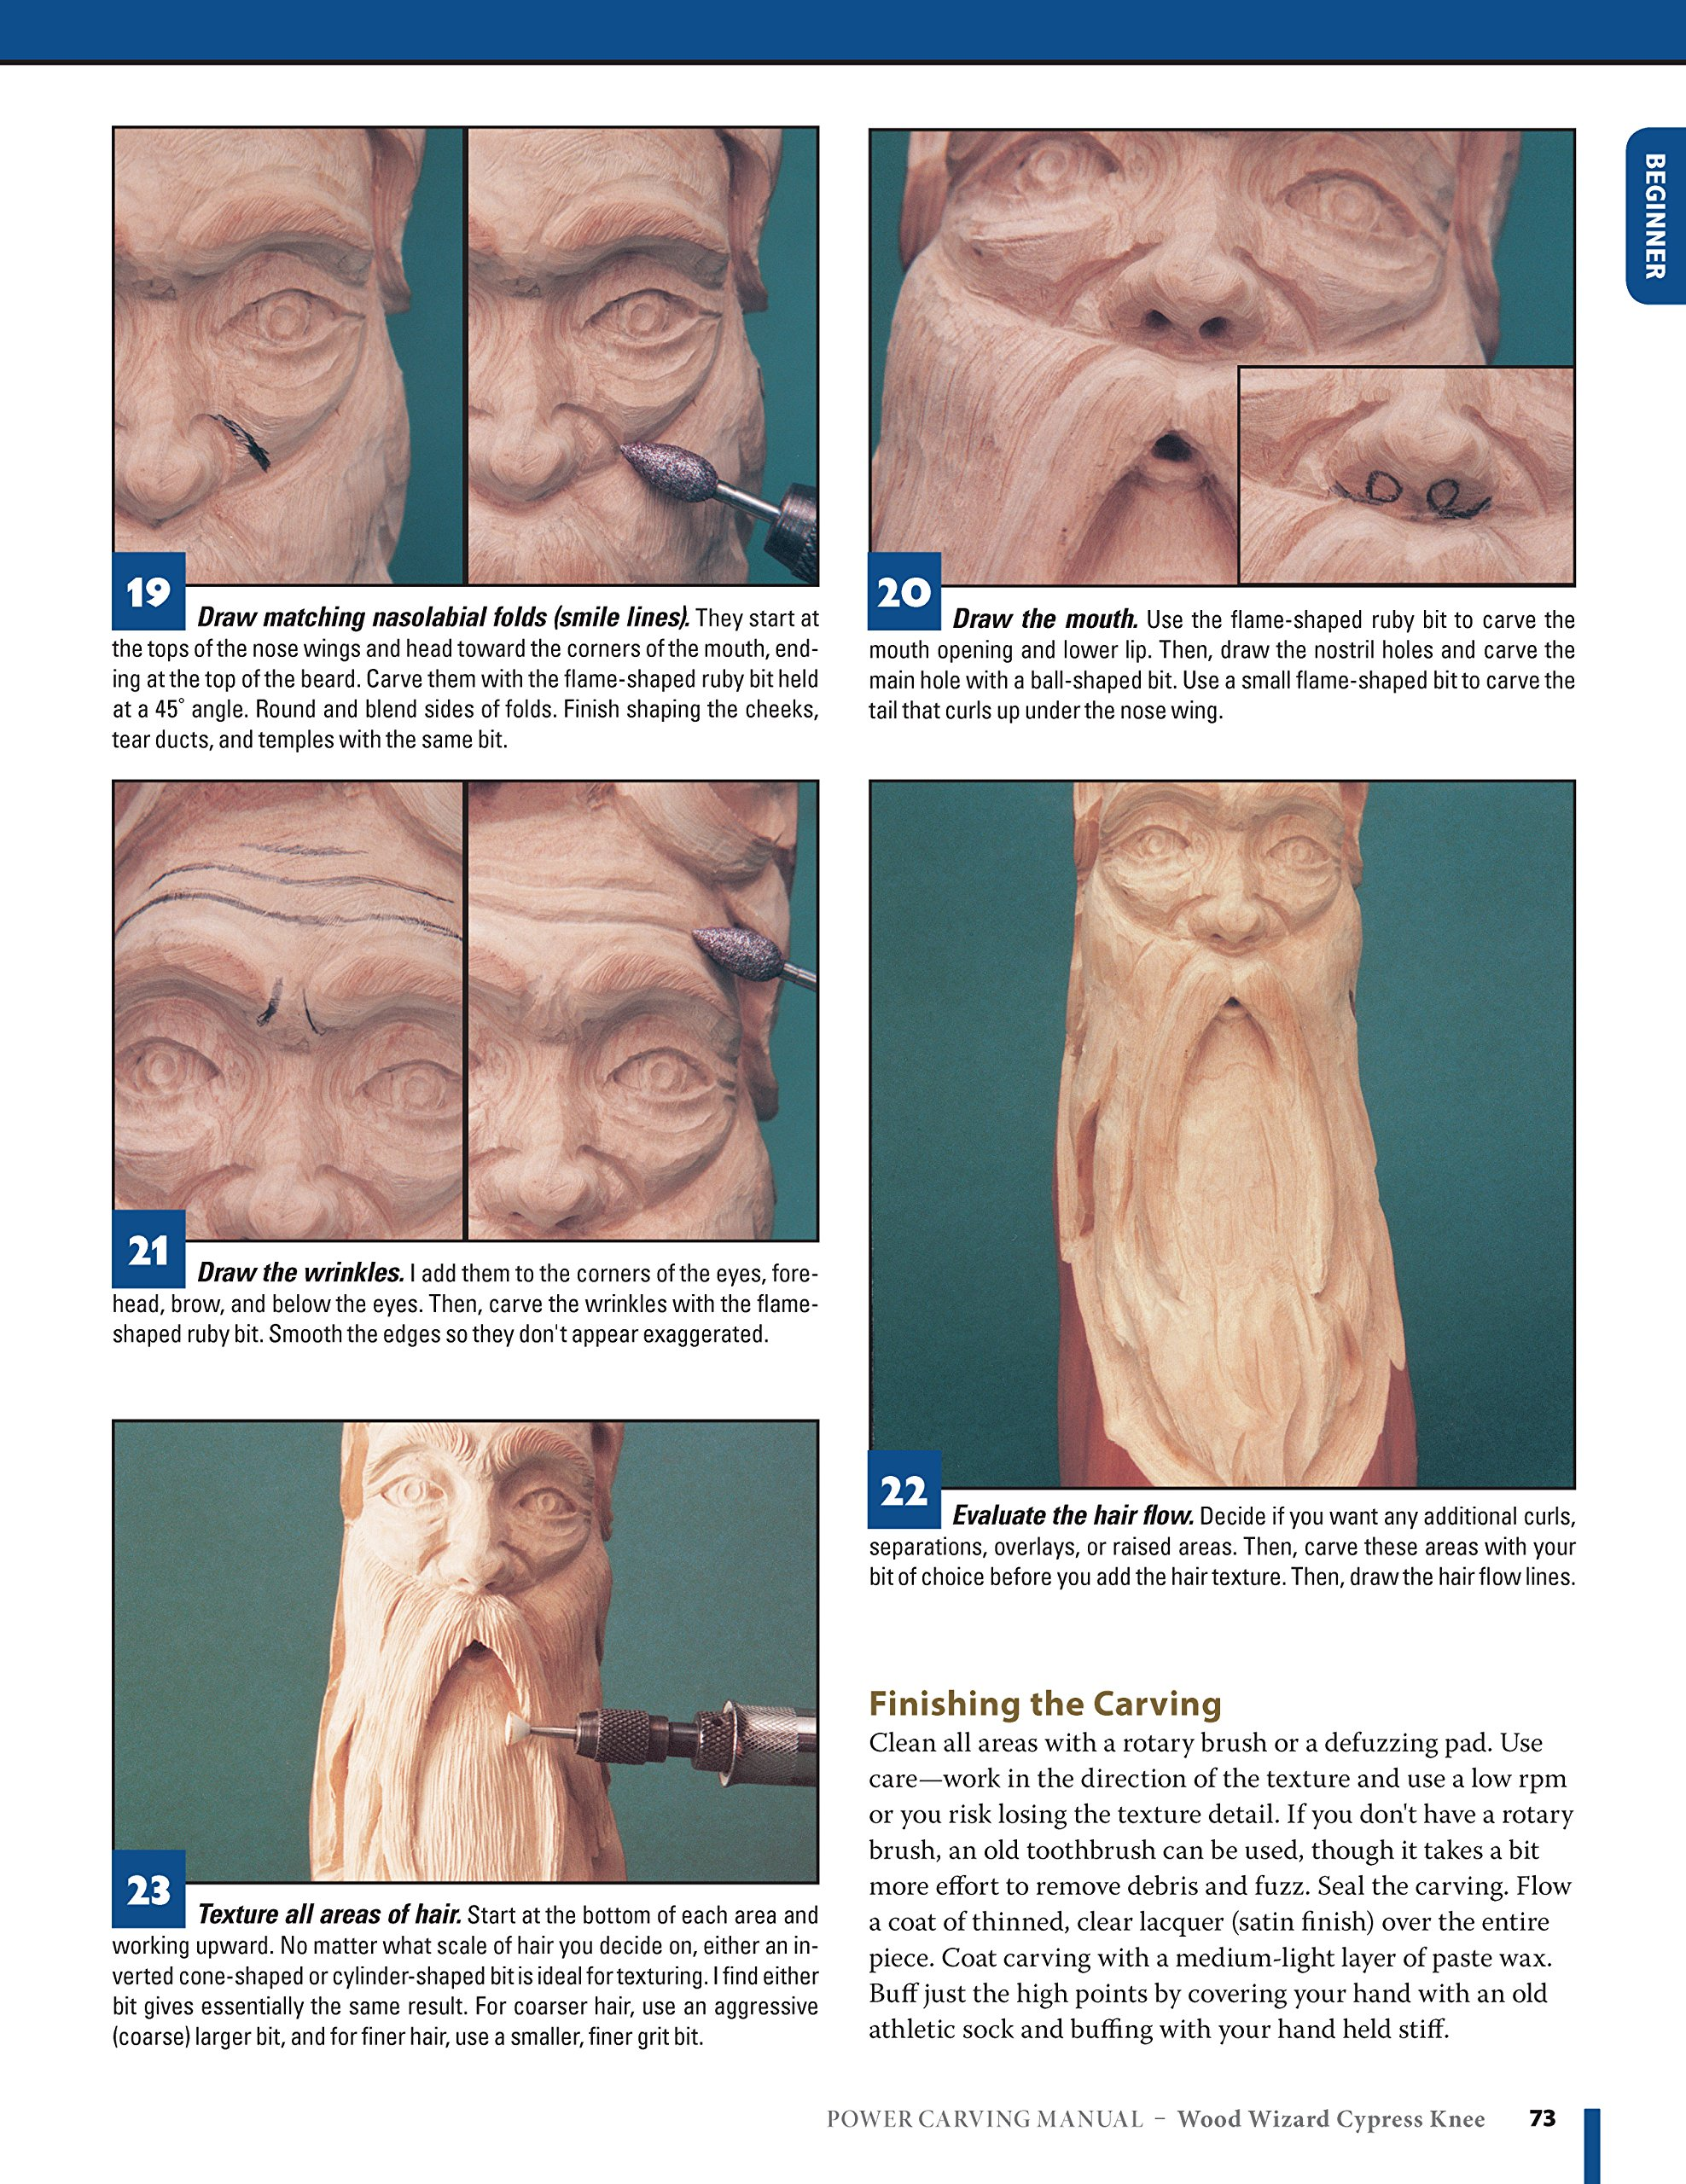 Power Carving Manual, Second Edition: Tools, Techniques, and 22 All-Time  Favorite Projects (Fox Chapel Publishing) Step-by-Step Projects and Photos,  ...